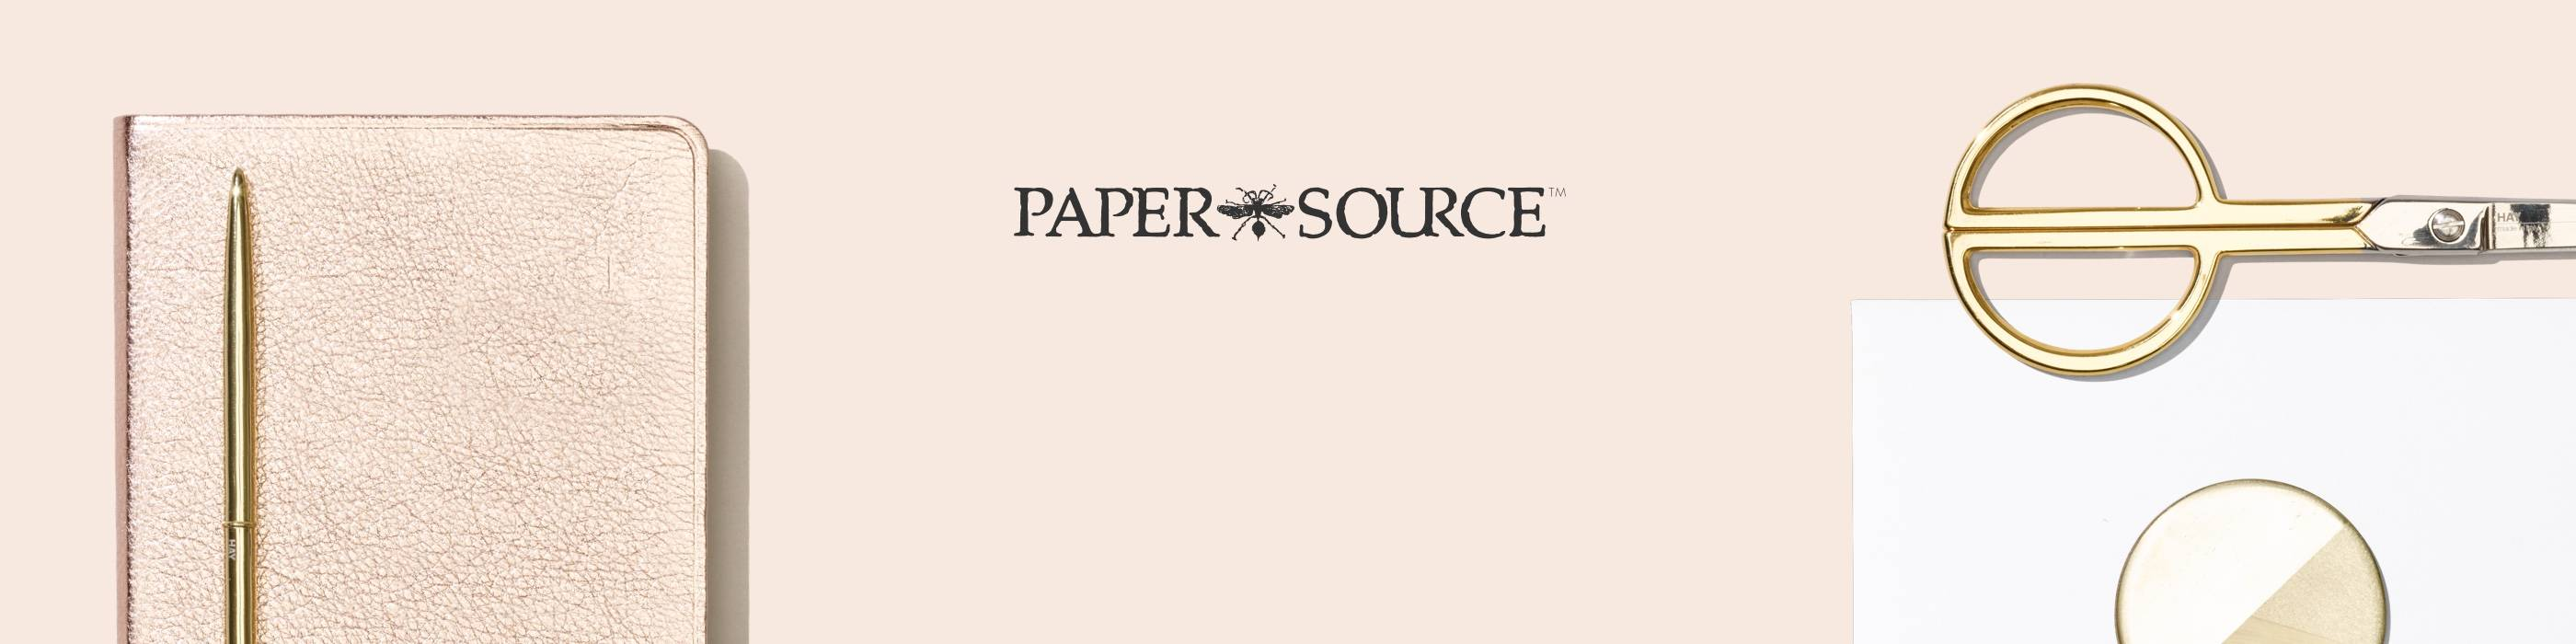 Paper Source at Paperless Post